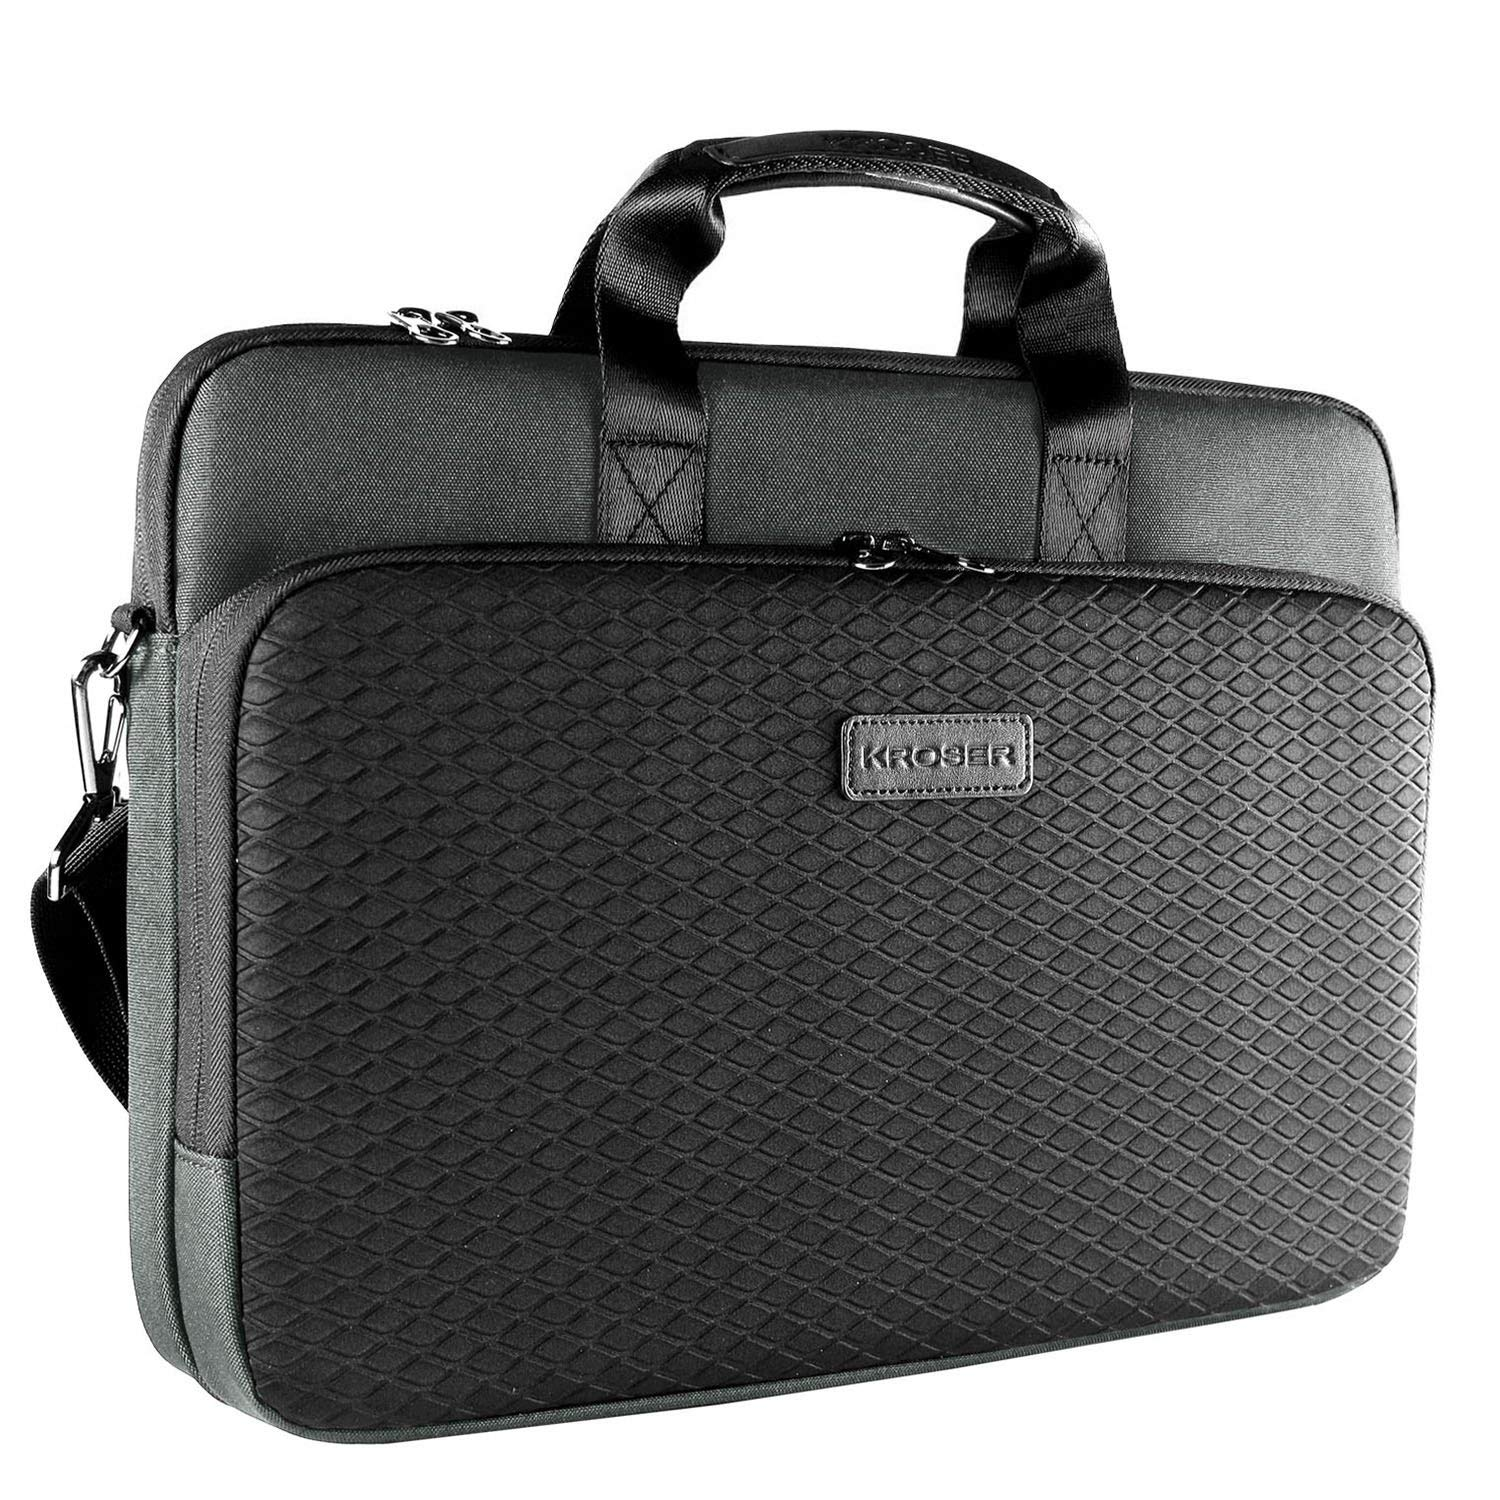 60% off KROSER Laotop Bag Laptop Briefcase 15.6 Inch Shoulder Messenger Bag Water-Repellent Business Bag Laptop Sleeve Case